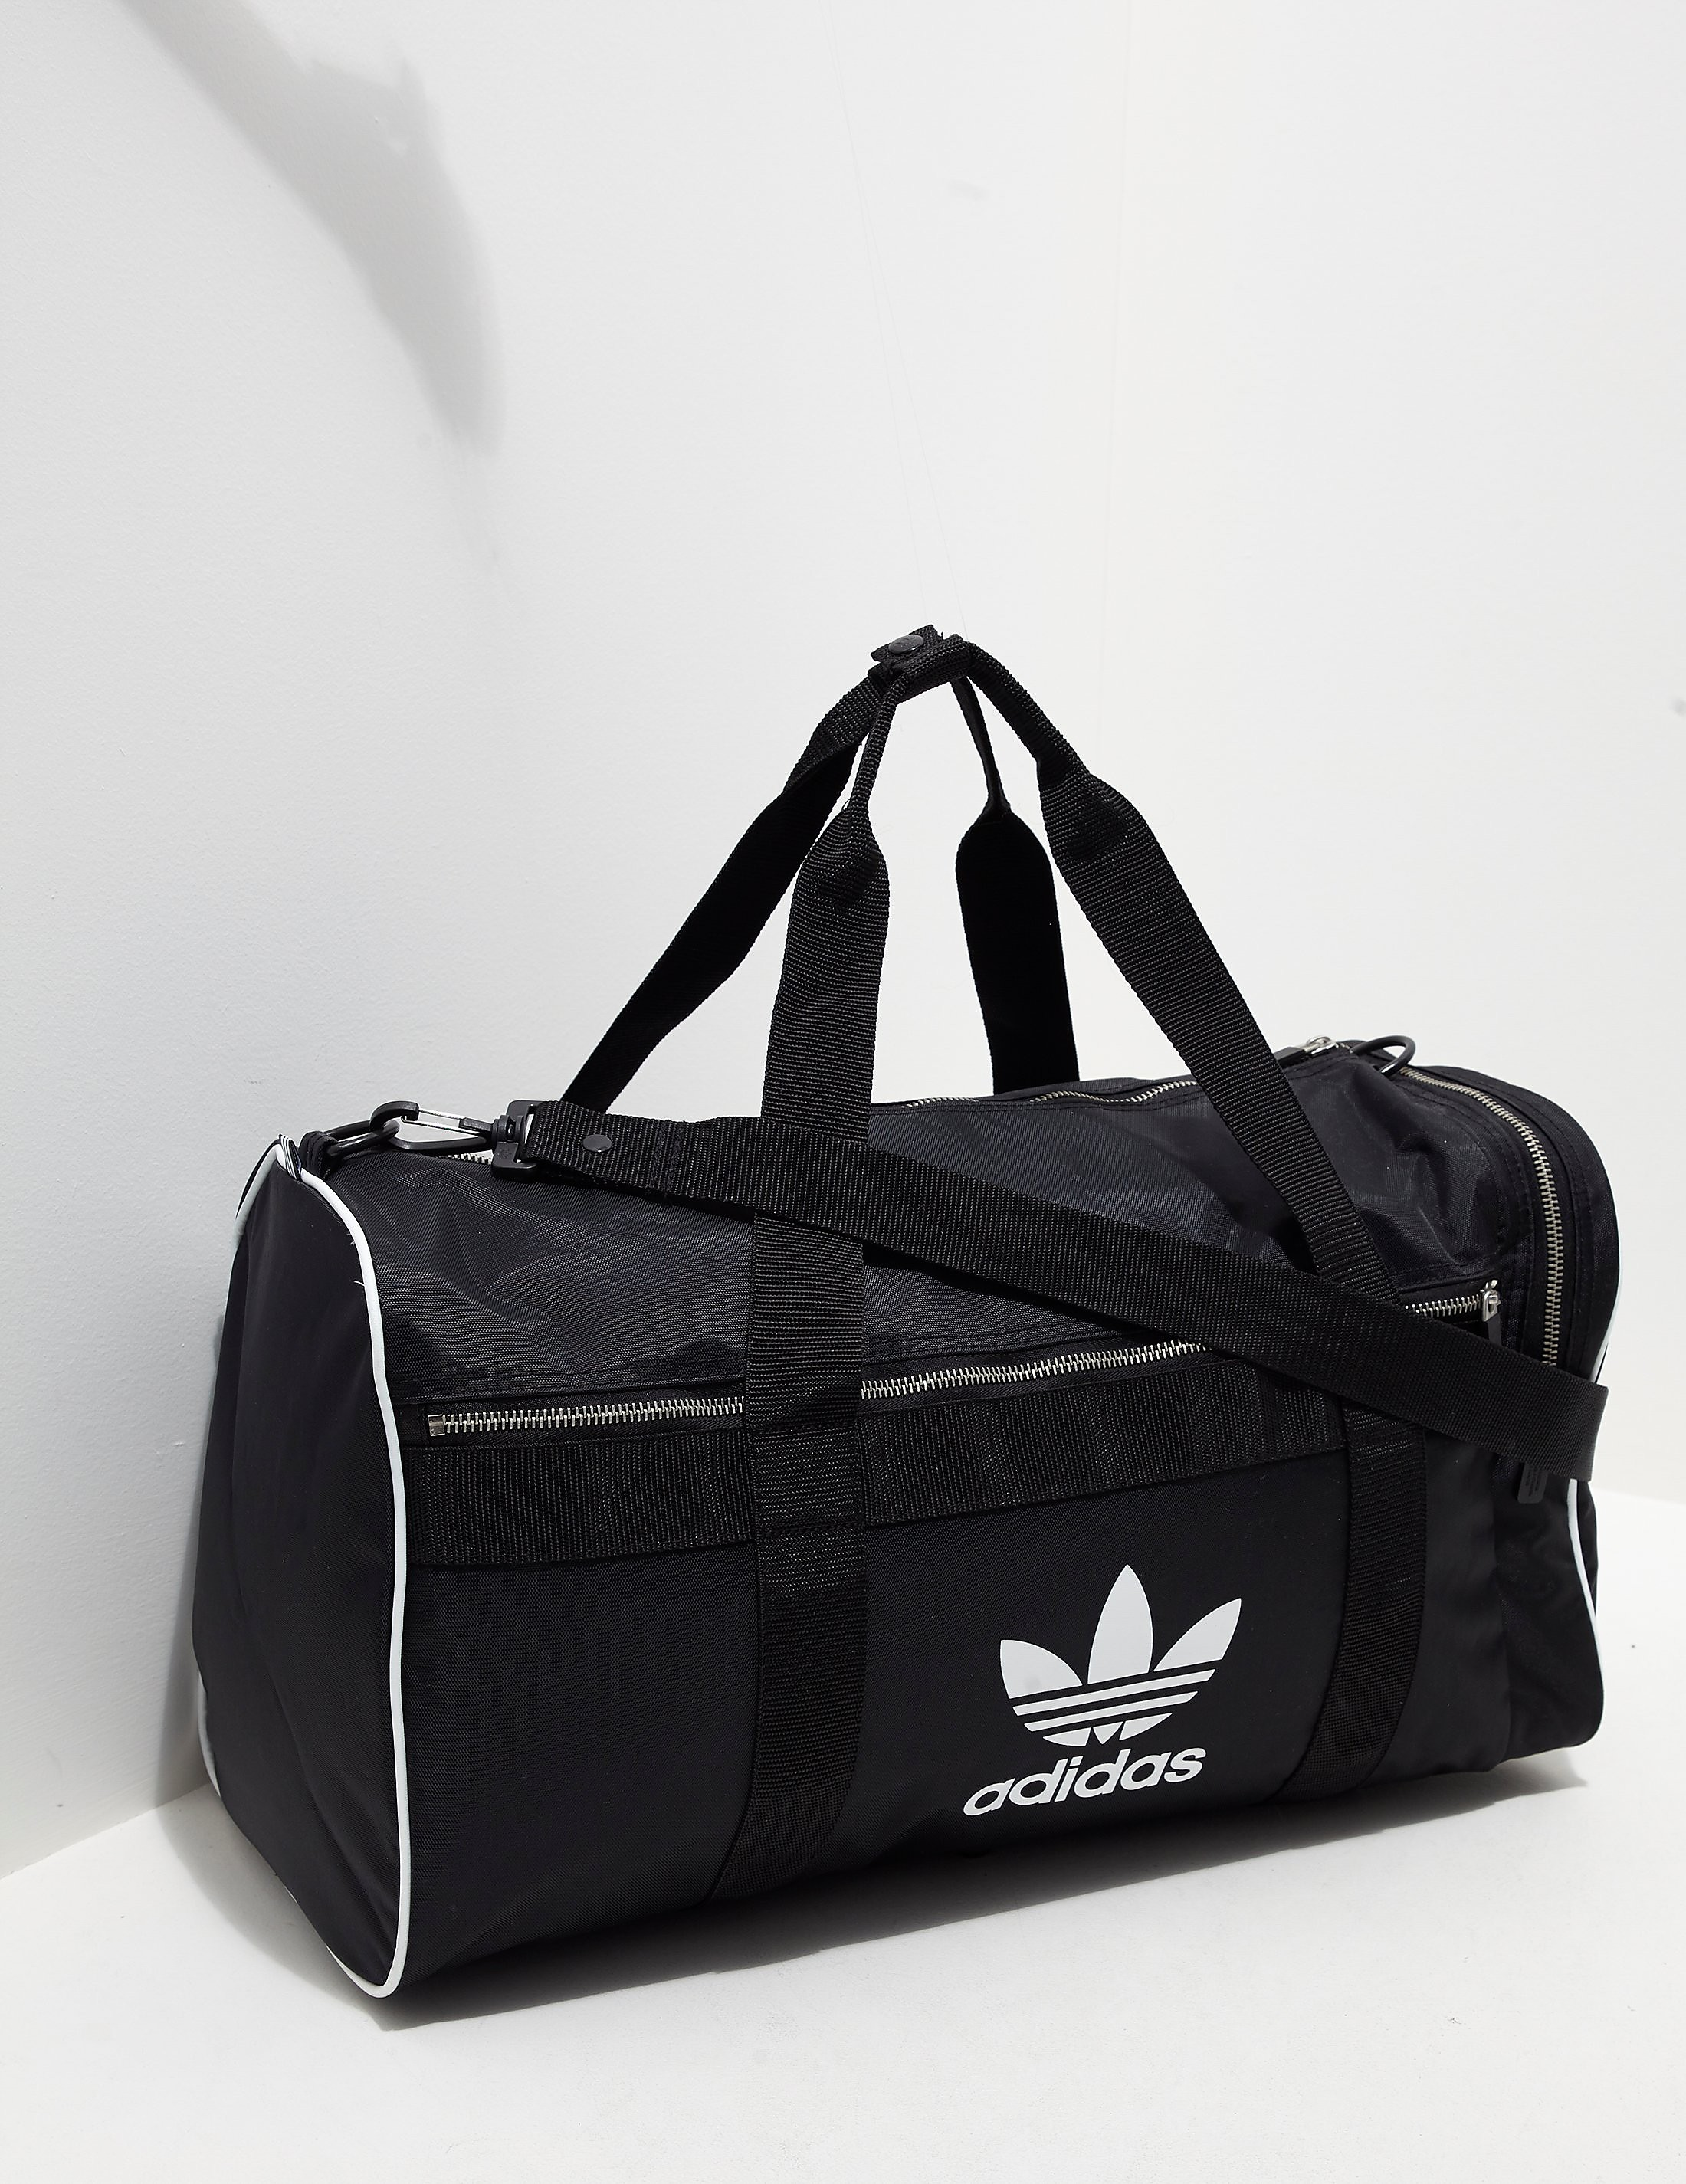 adidas Originals Trefoil Duffle Bag